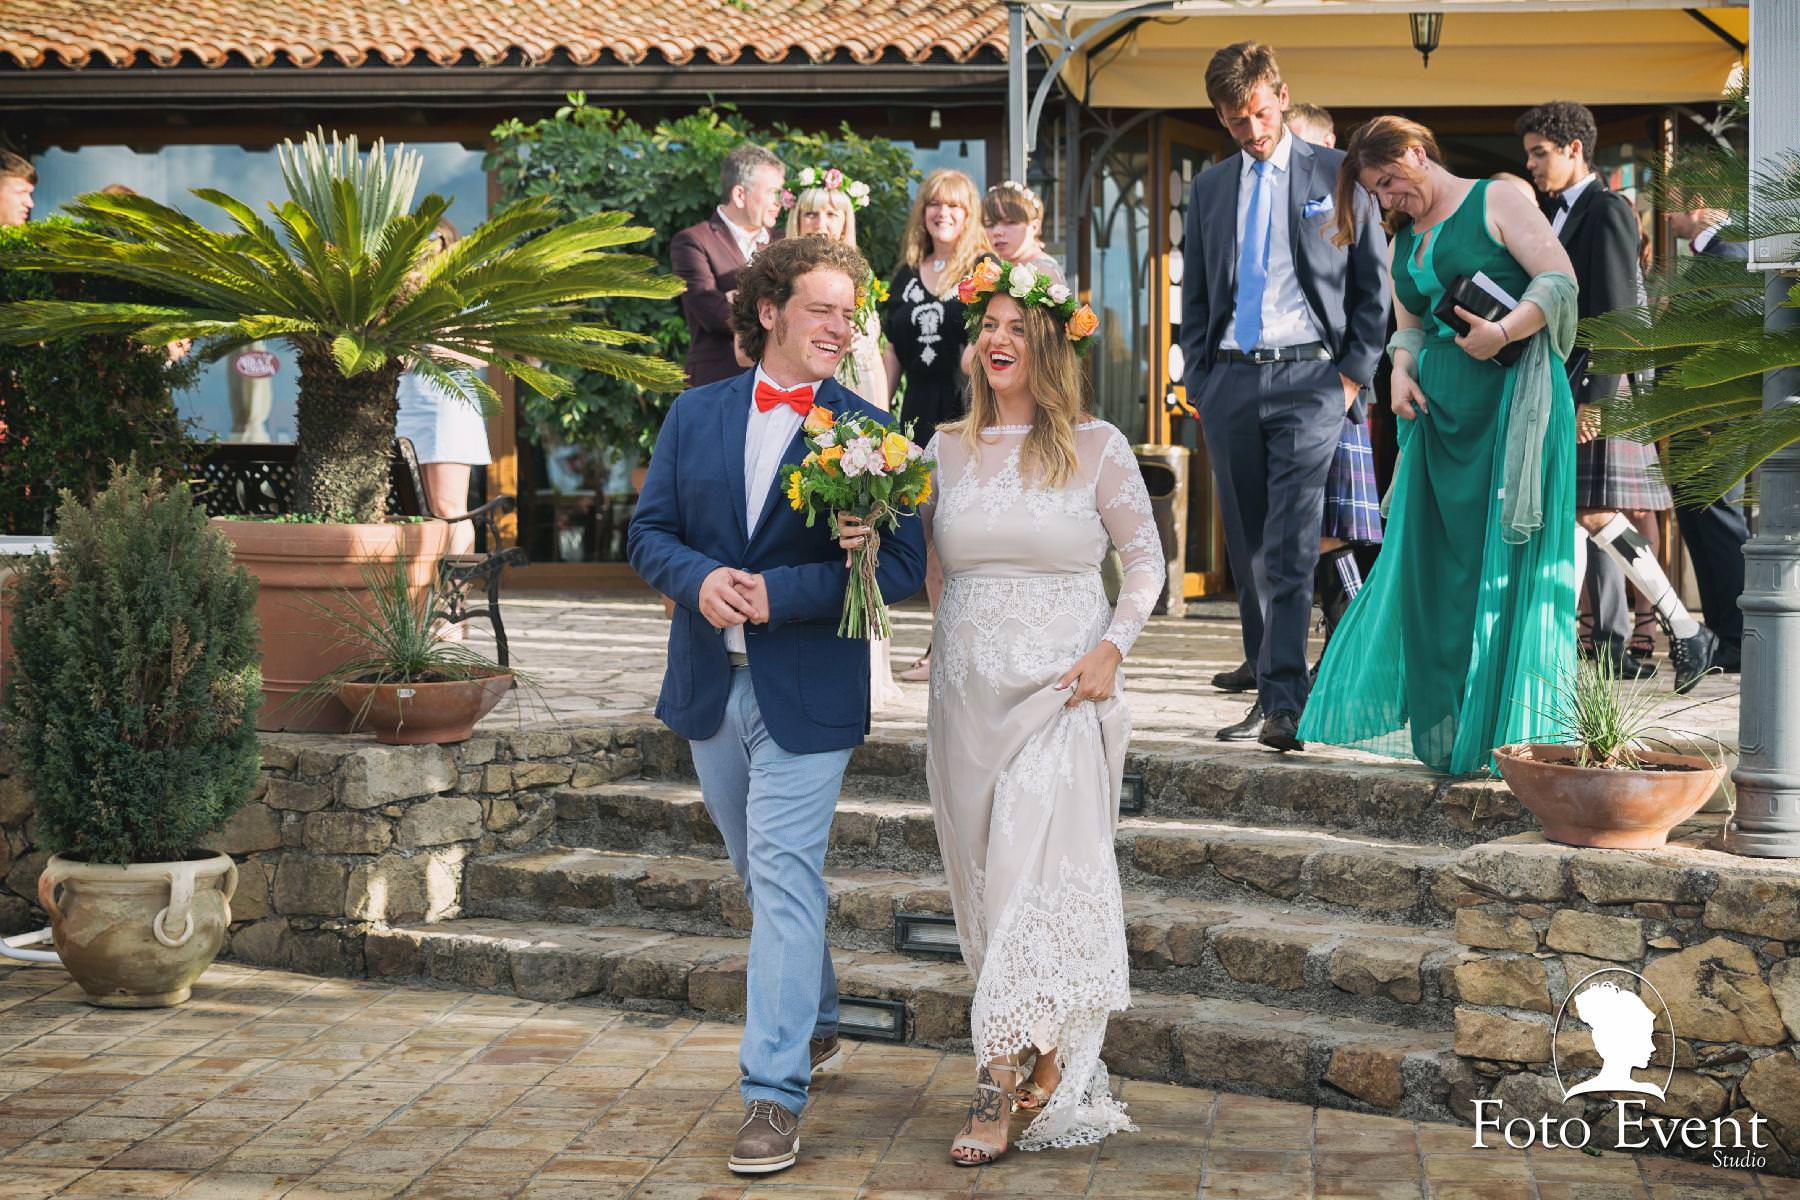 Destination wedding sicily Elisa Bellanti Foto Event Studio 240